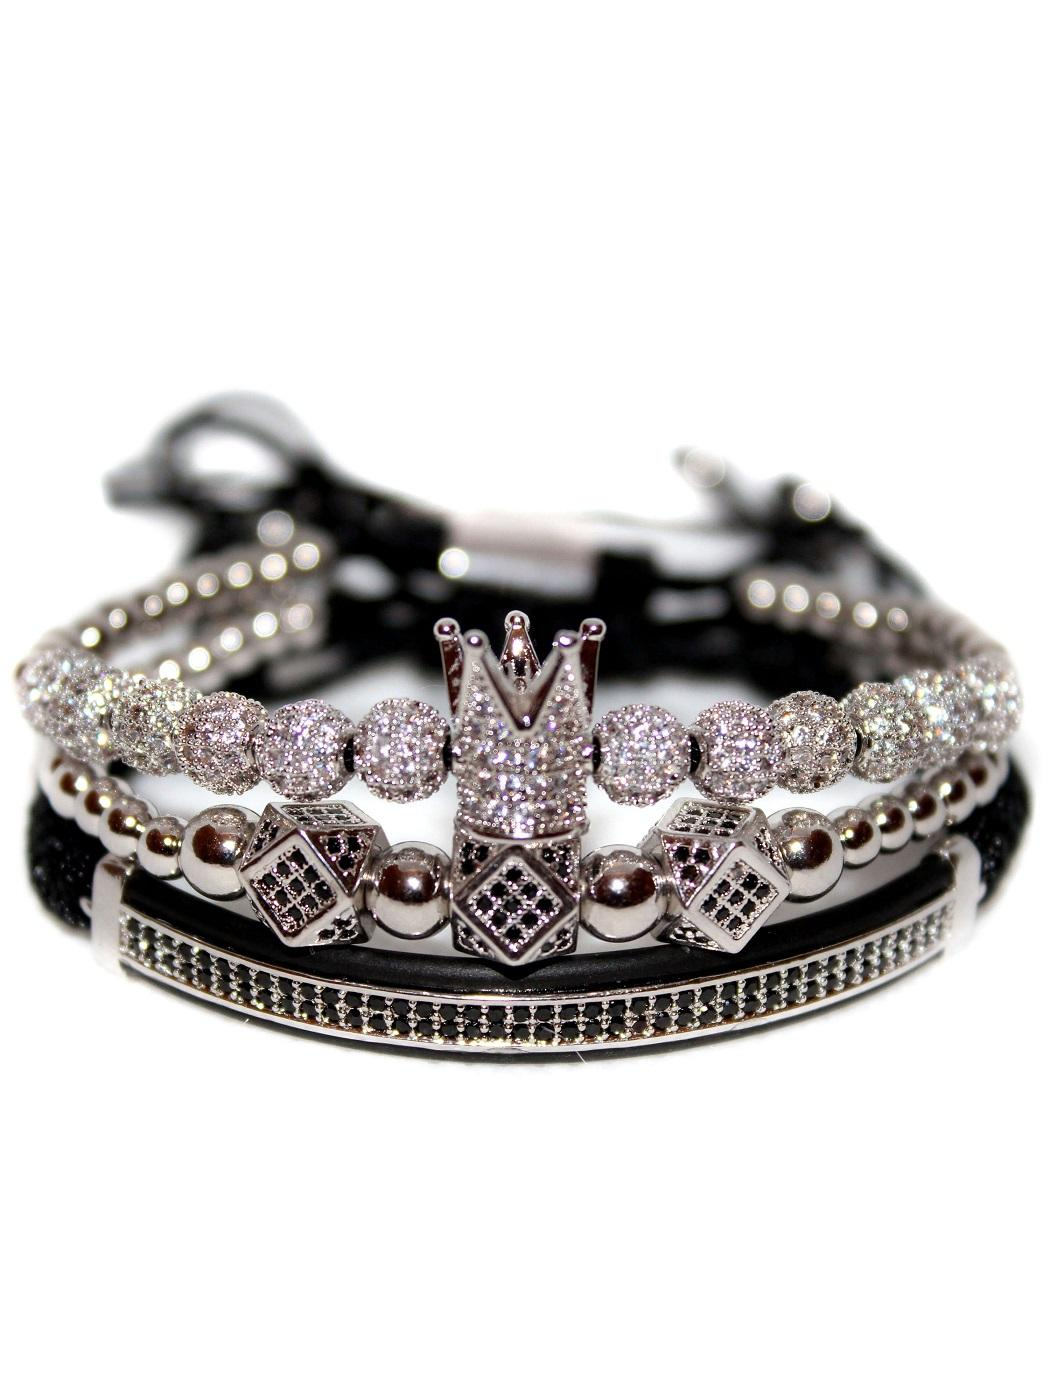 New York, Los Angeles, Chicago, Houston, Phoenix, Philadelphia, San Antonio, San Diego, Dallas, San Jose, Austin, Jacksonville, Fort Worth, Columbus, Charlotte, San Francisco, Indianapolis, Seattle, Denver, Washington, Charms And Bracelets, Buy Bracelets, Sterling Bangle Bracelet, Mens Stretch Bracelets, Handmade Mens Jewelry, Bracelet Collection, Beaded Bangles, Boutique Bracelets, Charm Bracelets And Charms, New Bracelet, Bracelet Shop, Man Ique Bracelet, Bracelet Accessories, Men's Accessories Jewelry, Love Bangle Bracelet, Sterling Cuff Bracelet, Mens Stainless Steel Cuff Bracelets, Queen Bracelet Silver Jewelry